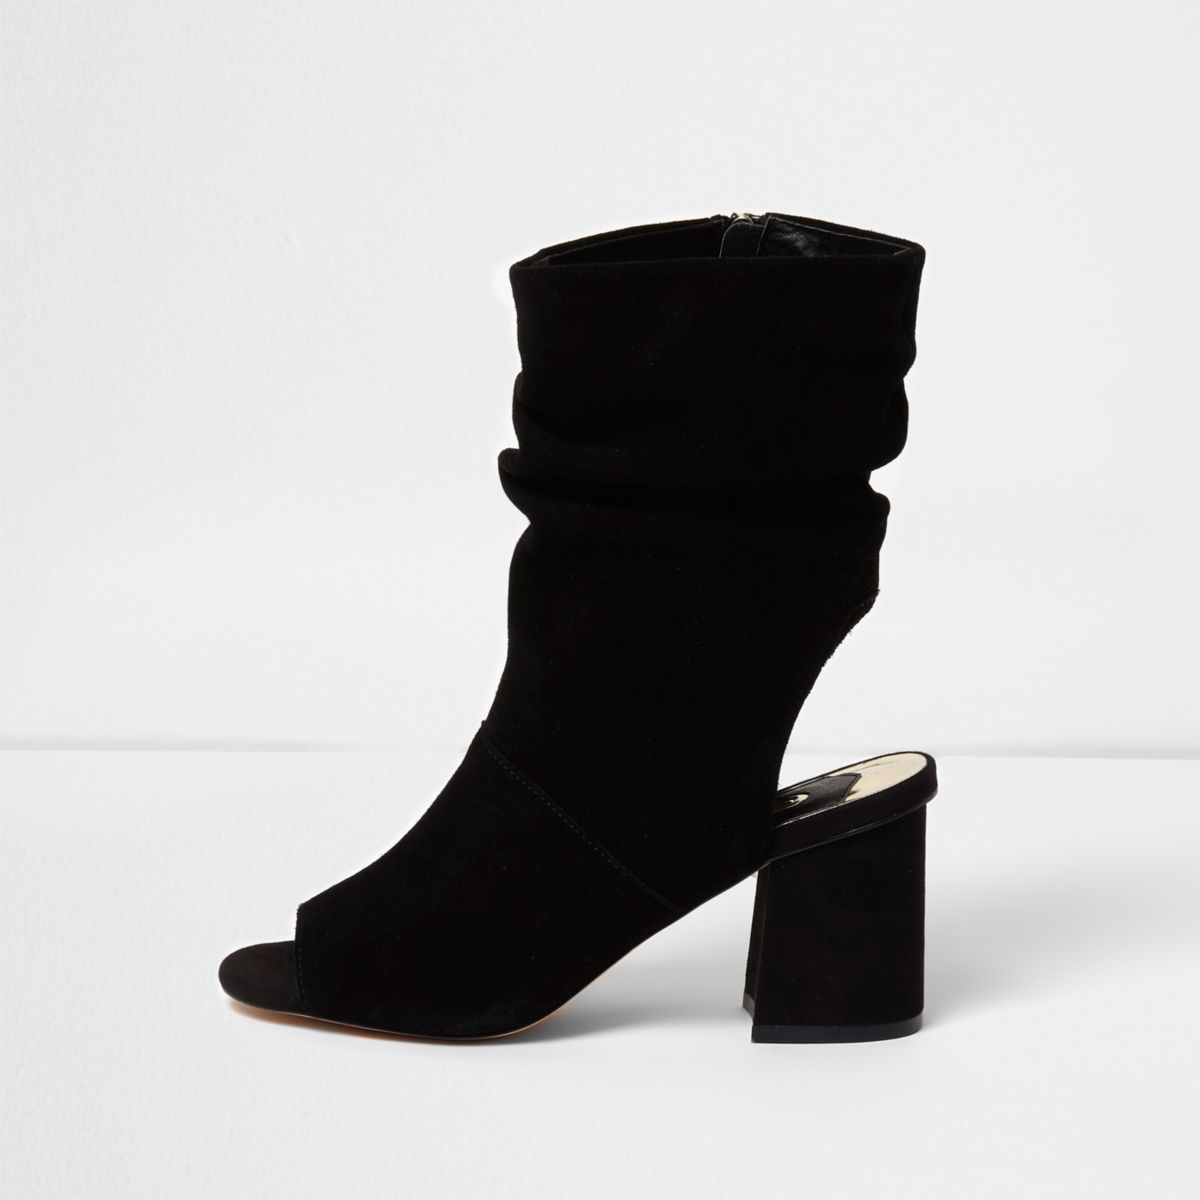 Bottines souples en daim noir